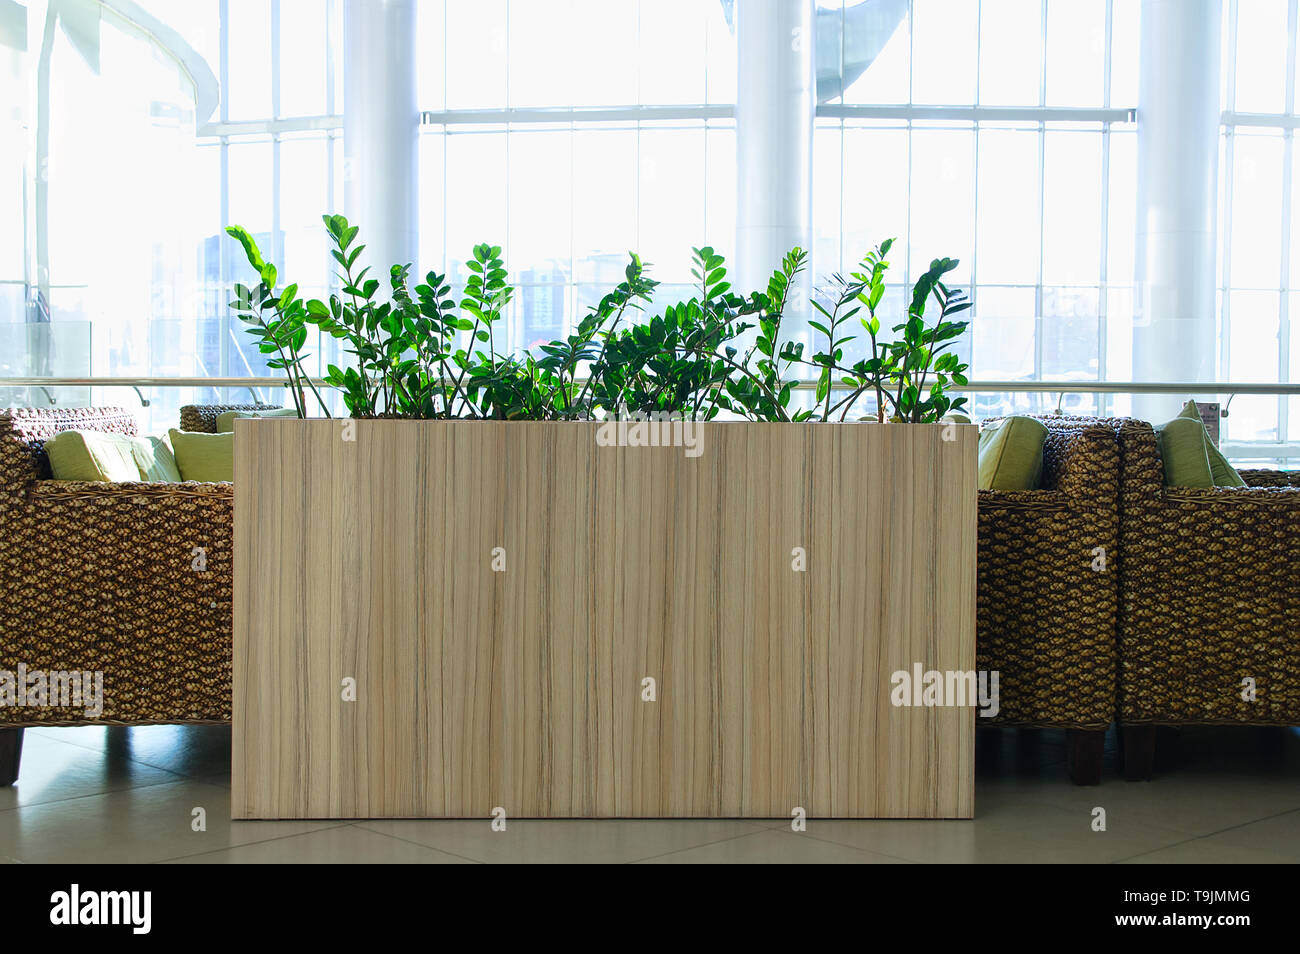 The interior of the cafe. Tables and rattan chairs. Ornamental plants. - Stock Image